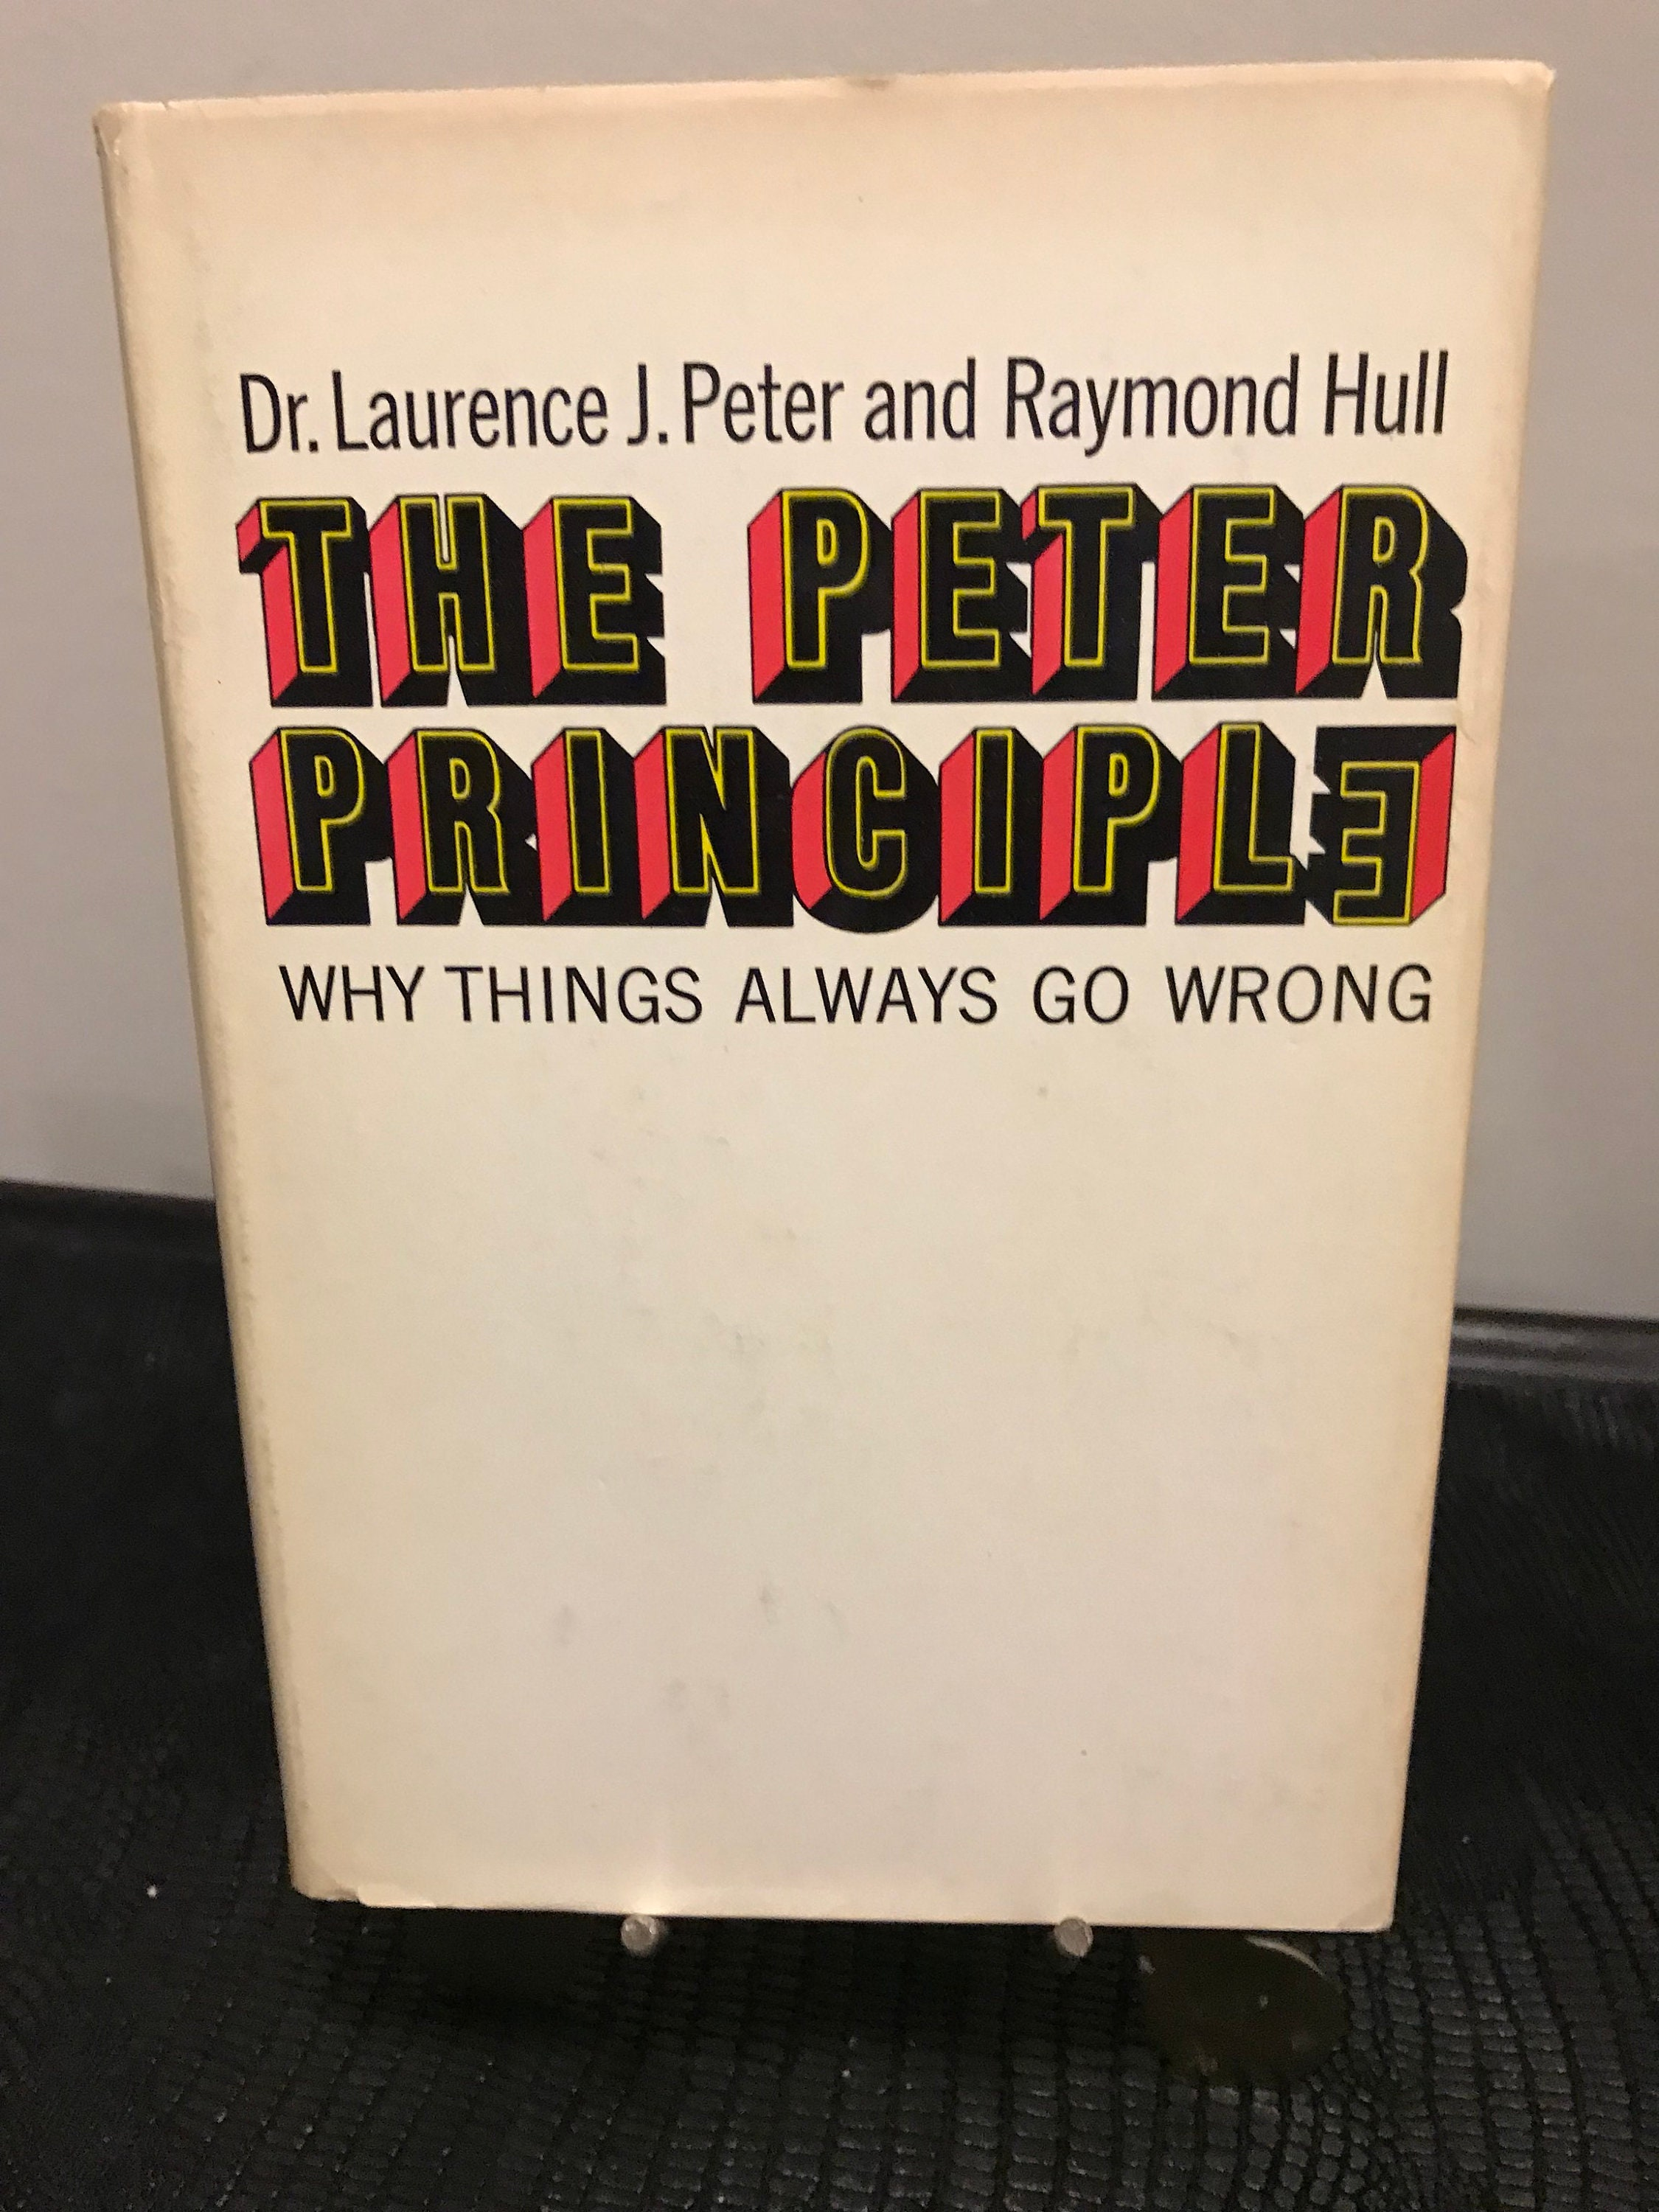 نتيجة بحث الصور عن ‪The Peter Principle: Why Things Always Go Wrong‬‏